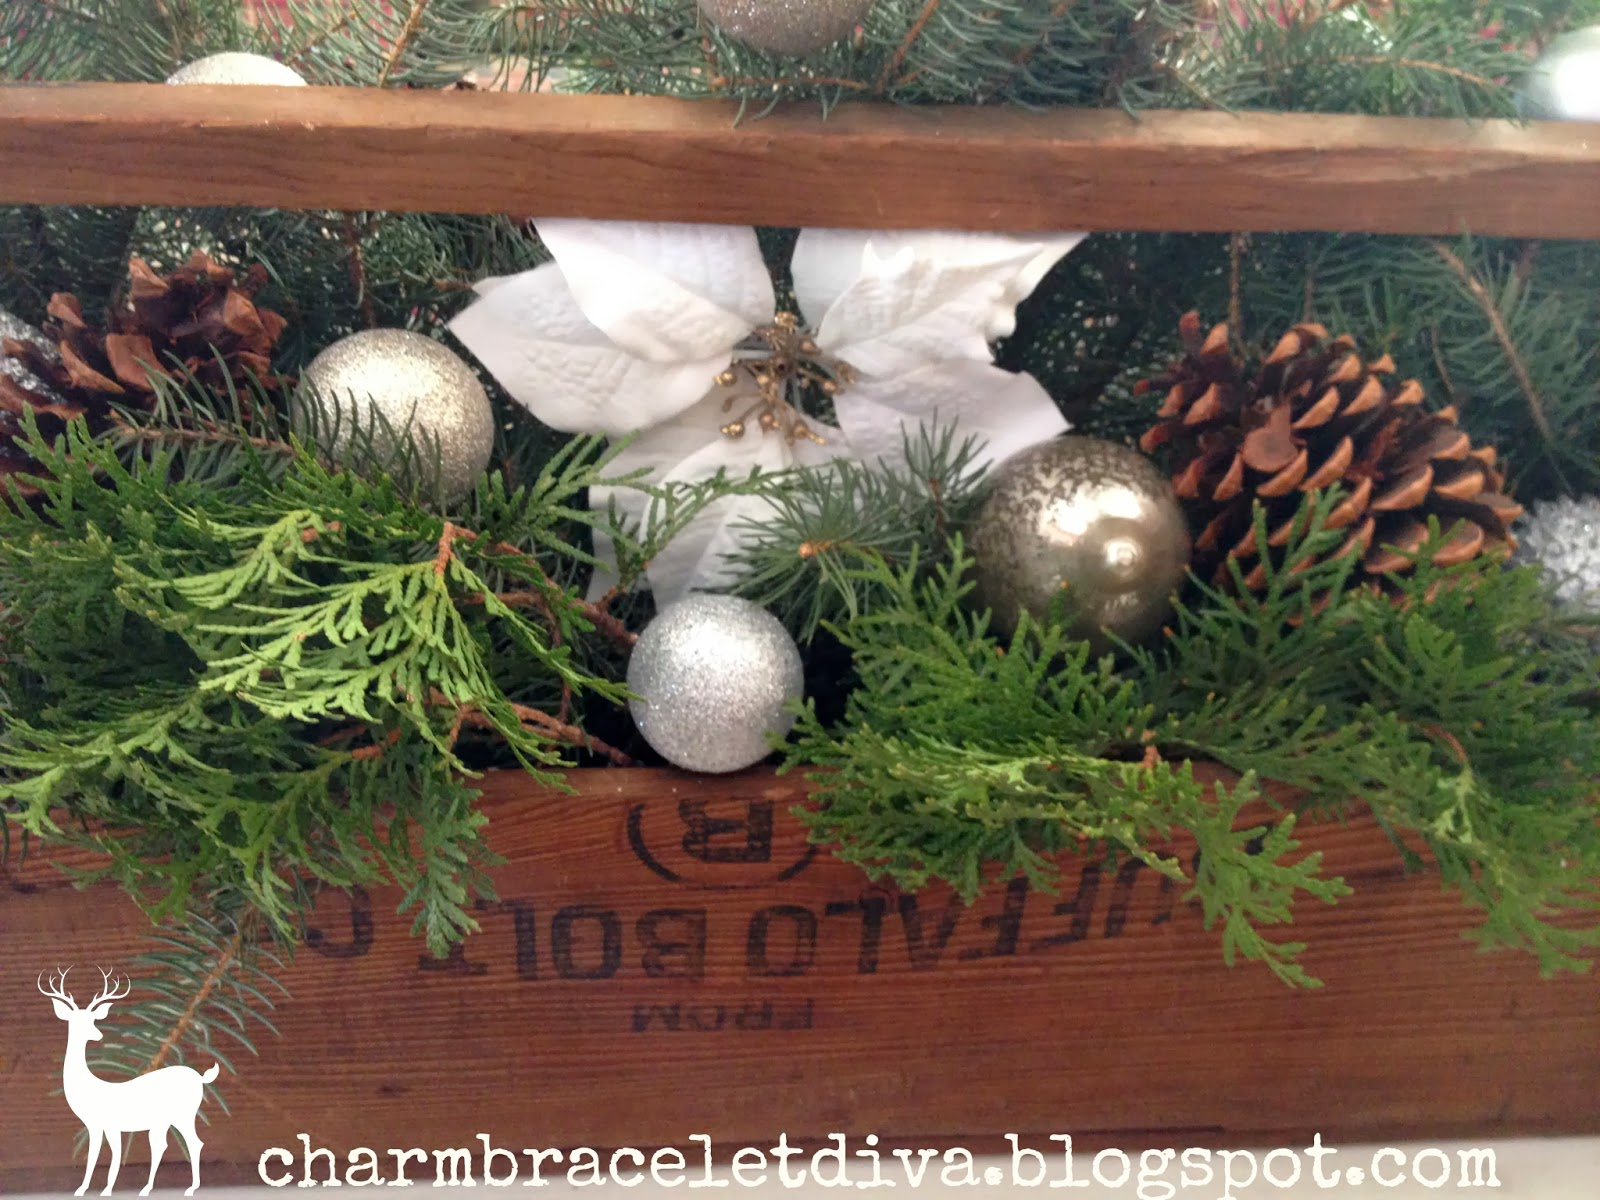 Our hopeful home simple rustic christmas centerpiece for Rustic simplicity